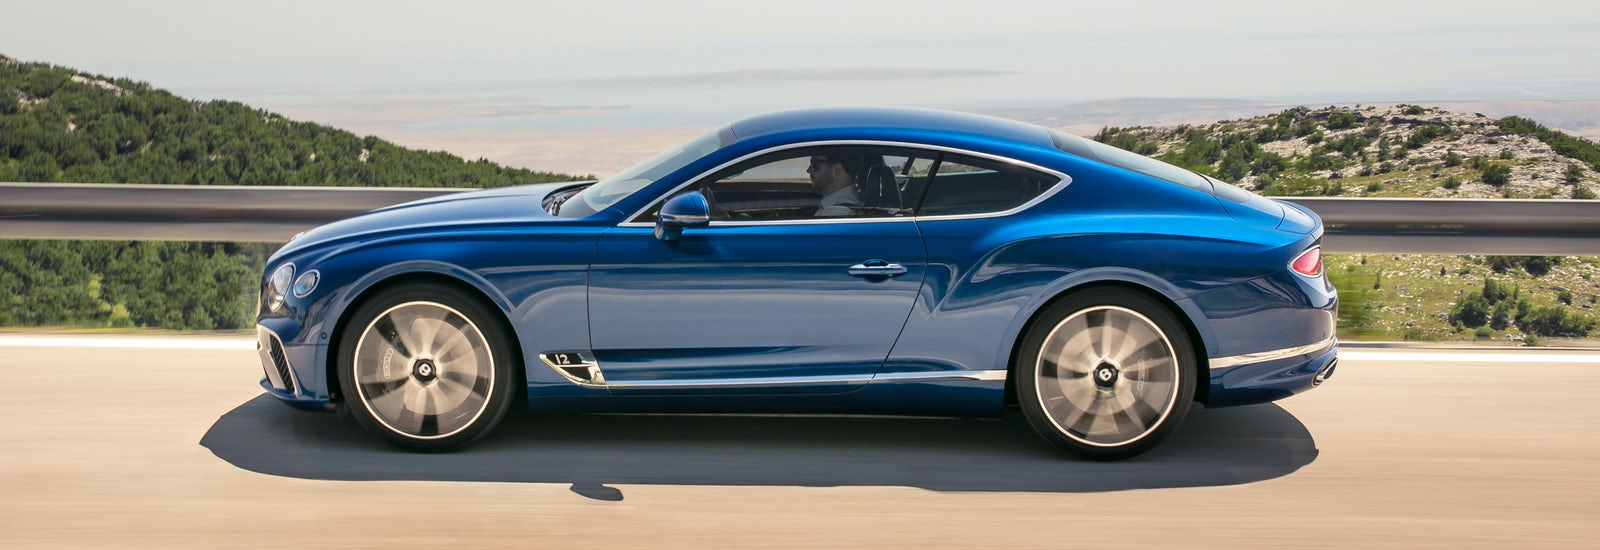 2018 bentley continental gt price specs release date carwow. Black Bedroom Furniture Sets. Home Design Ideas